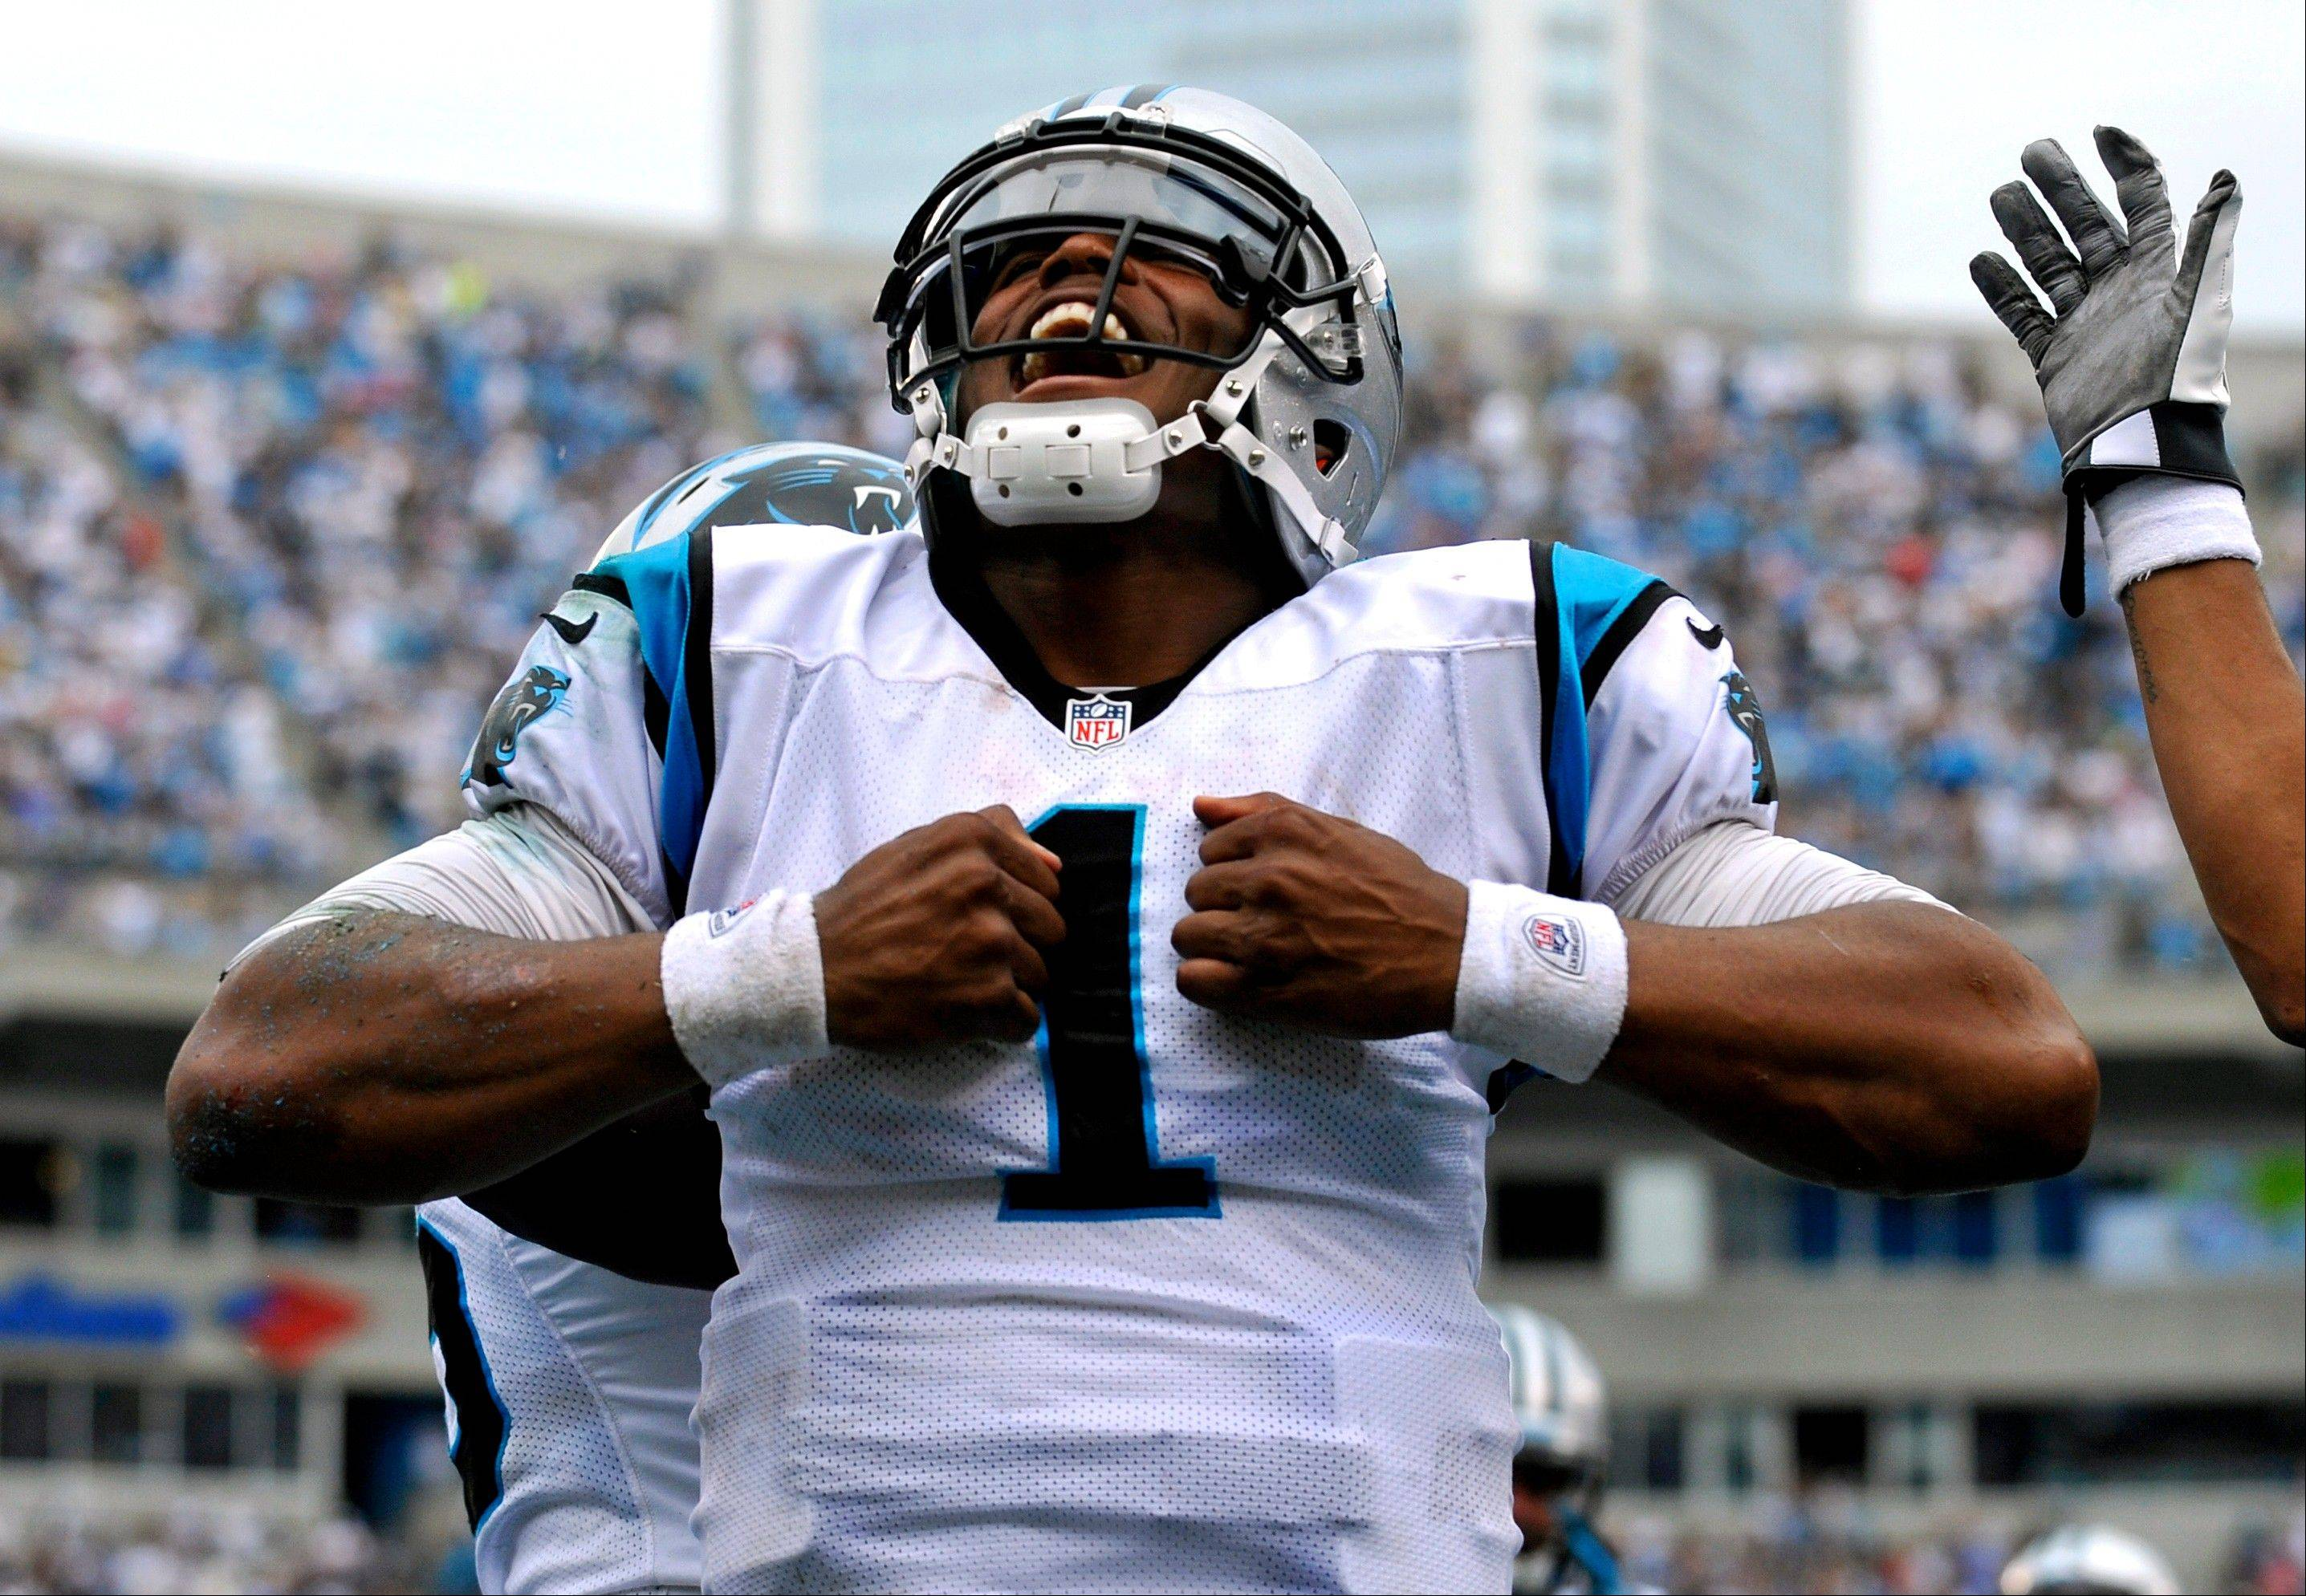 Carolina Panthers' Cam Newton (1) reacts after running for a touchdown against the New Orleans Saints during the fourth quarter in Charlotte, N.C.